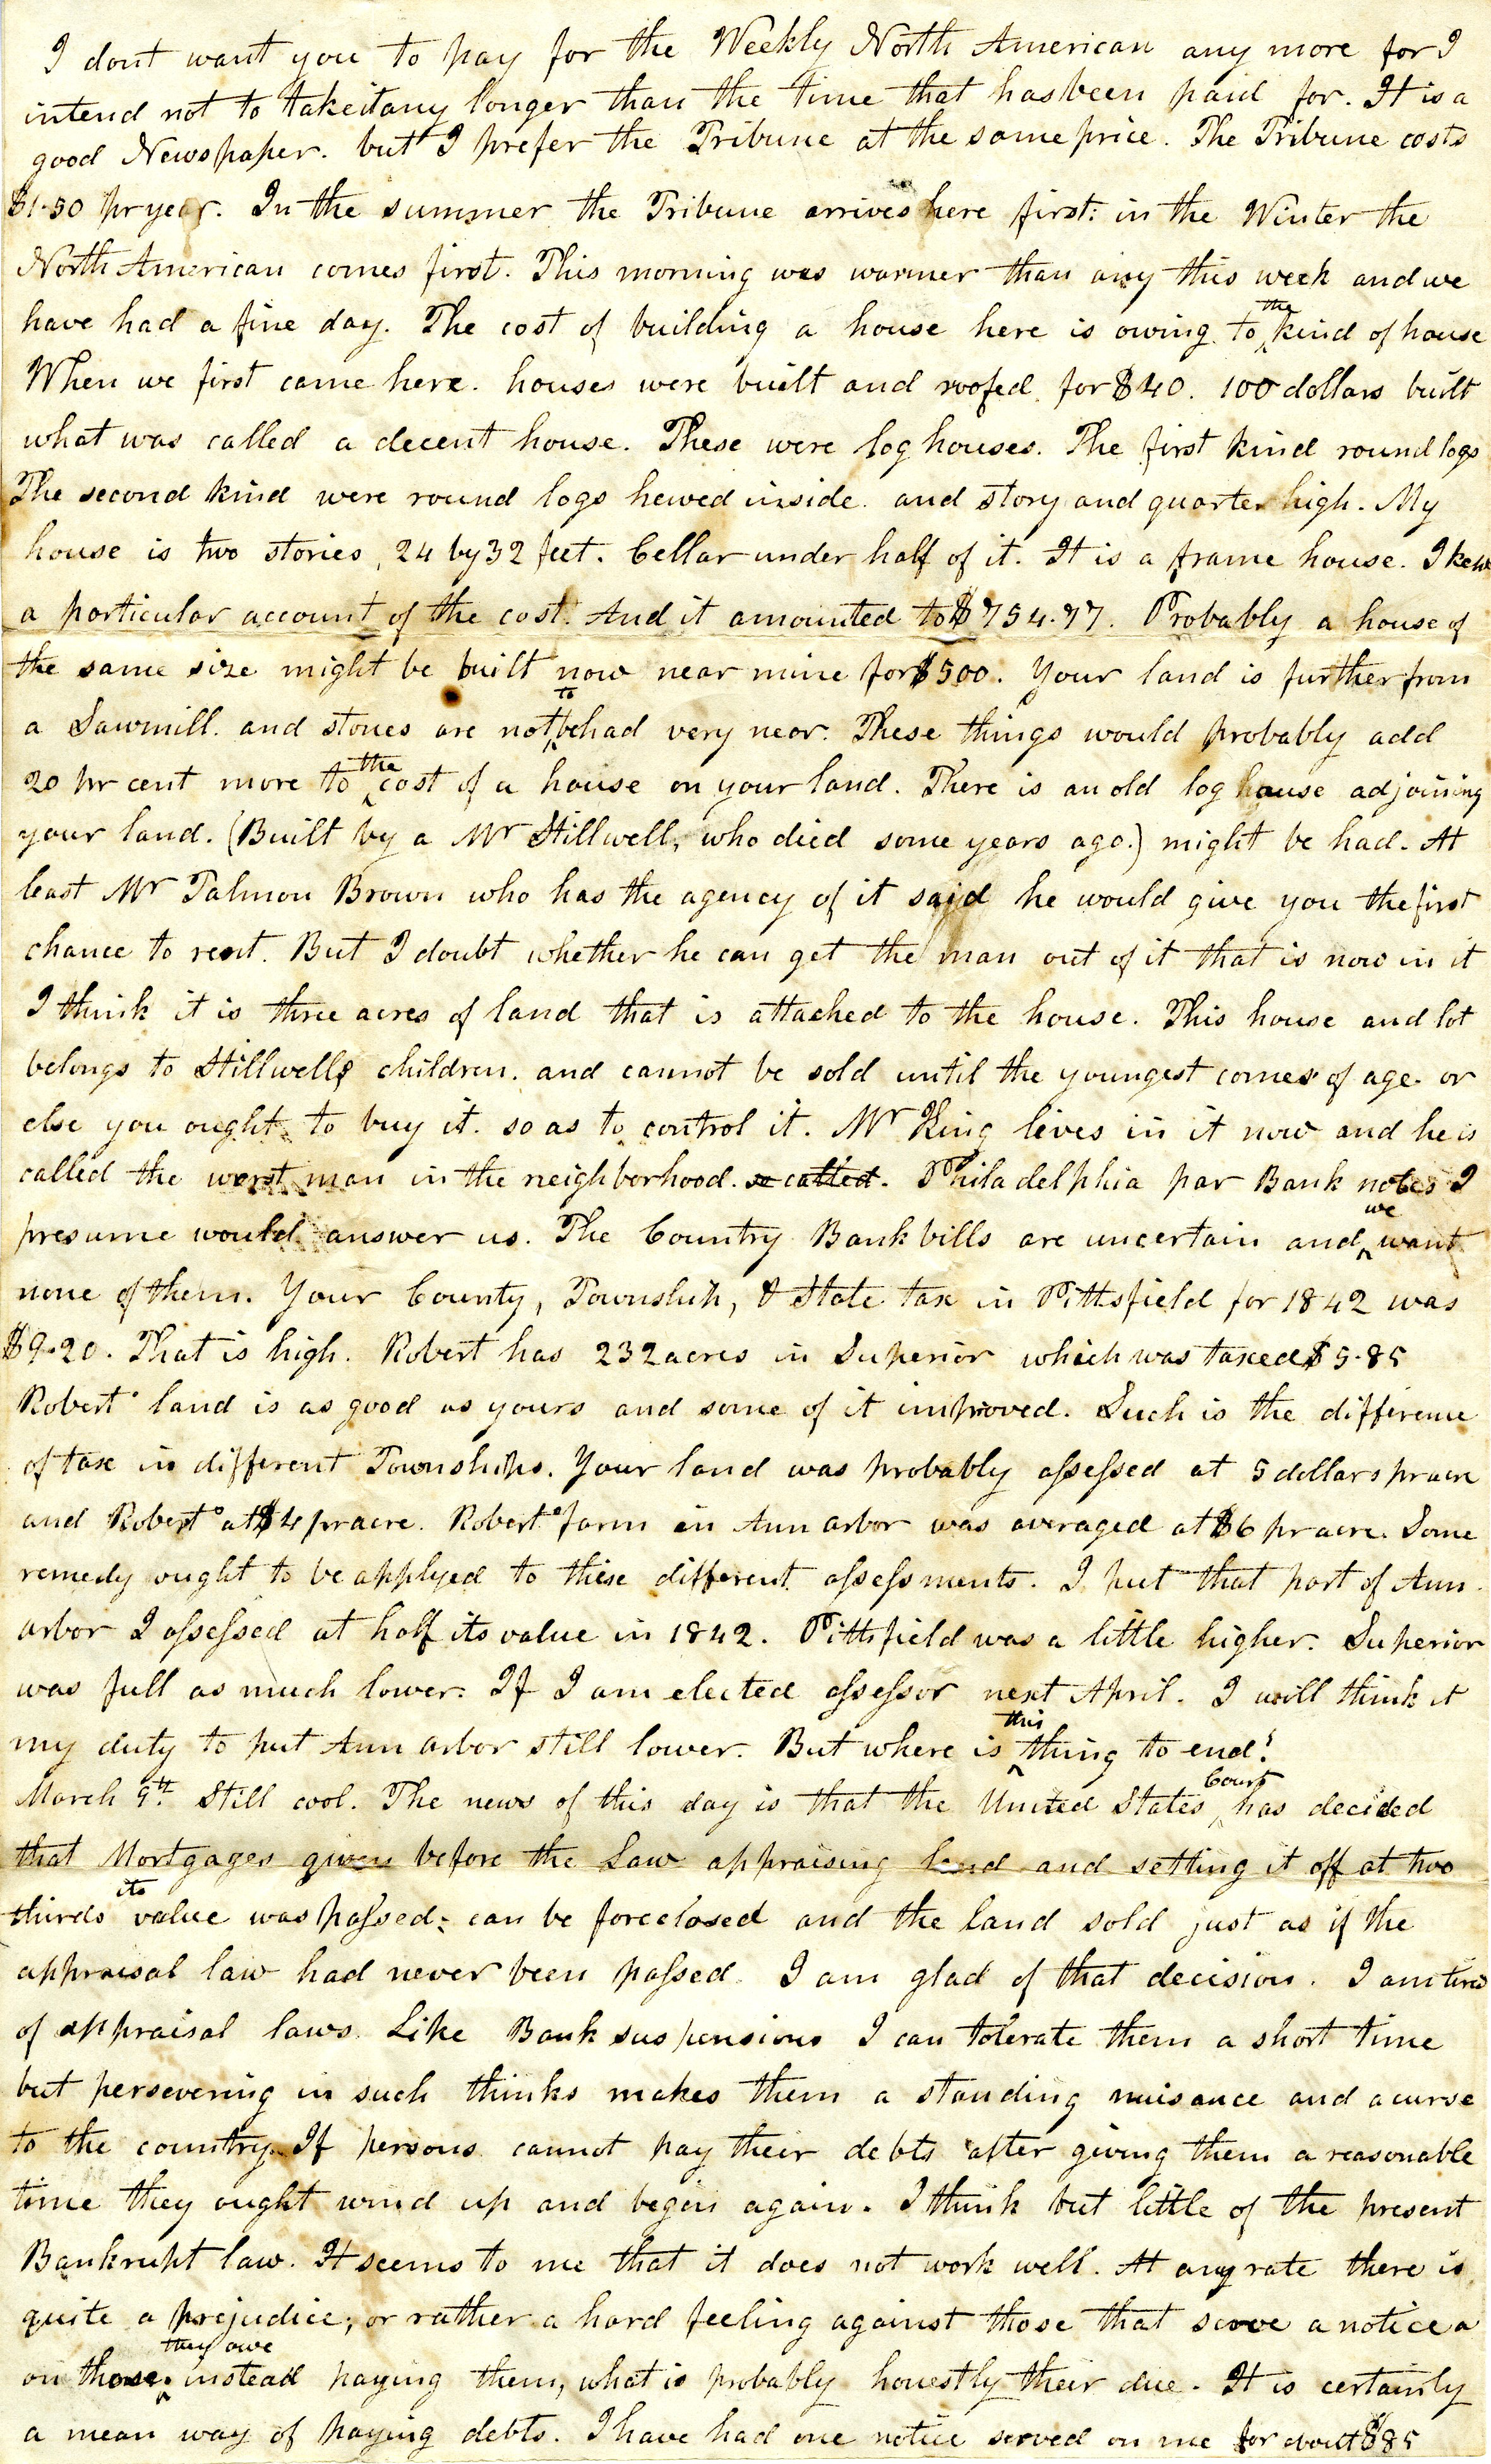 Letter From John Geddes to William Geddes, March 11, 1843 image